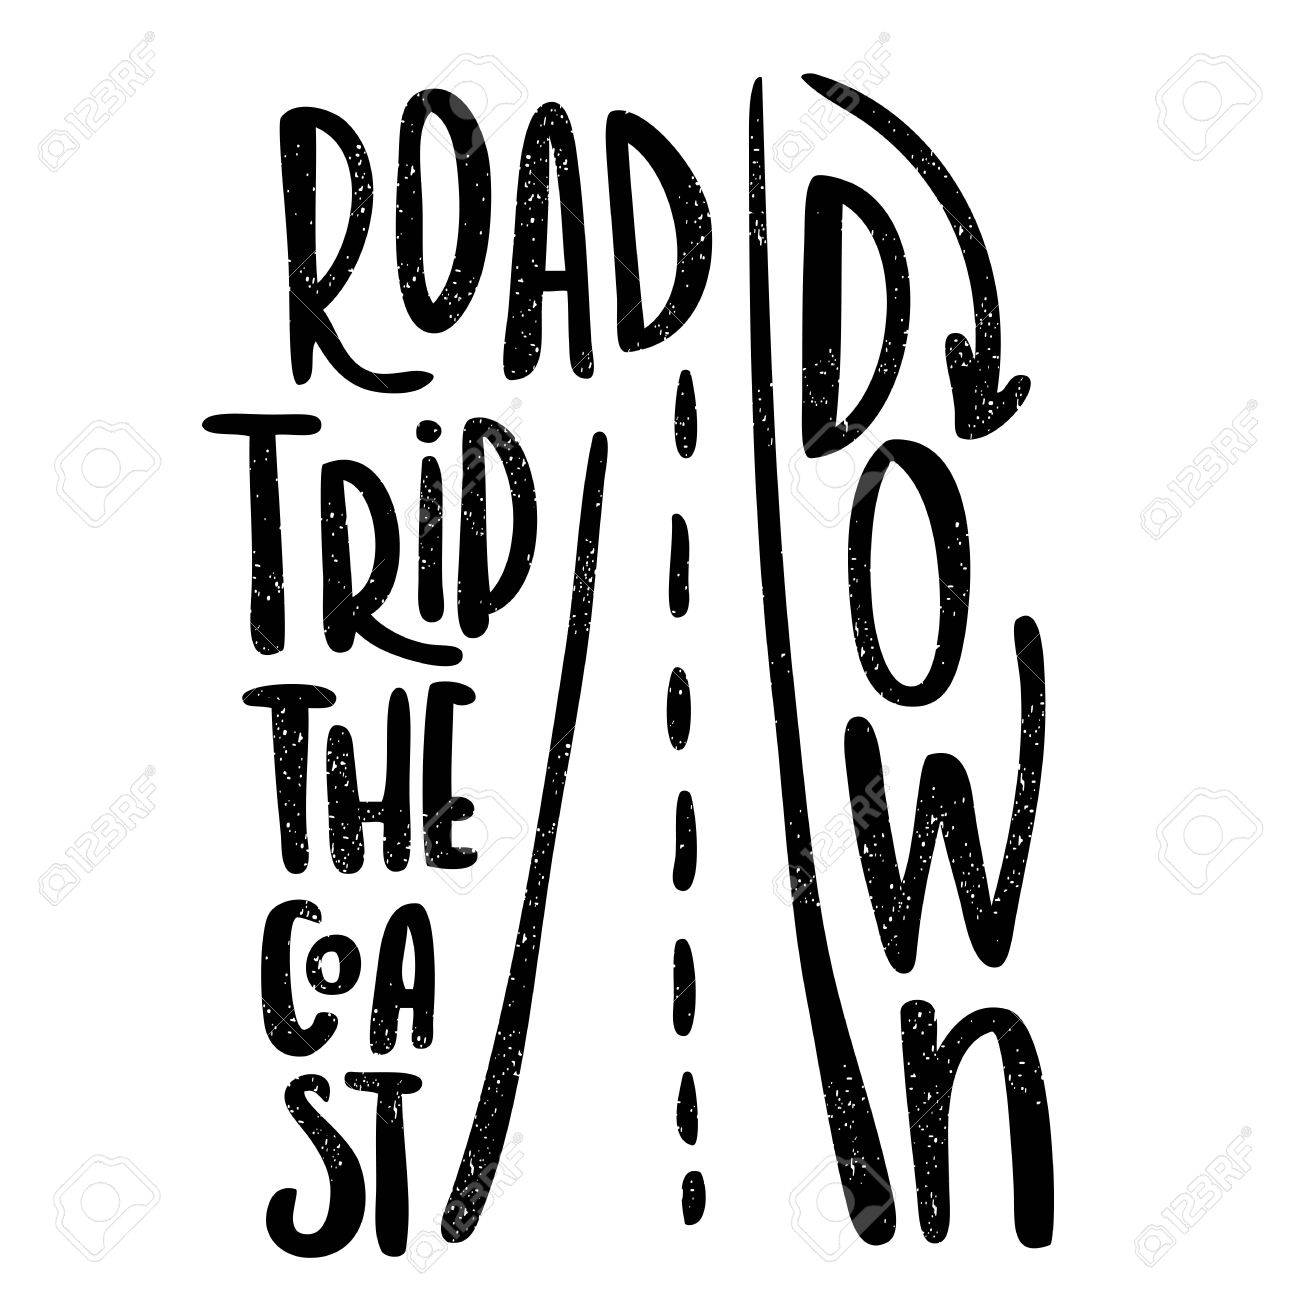 Road trip down the coast black white lettering decorative road trip down the coast black white lettering decorative letter hand drawn altavistaventures Choice Image